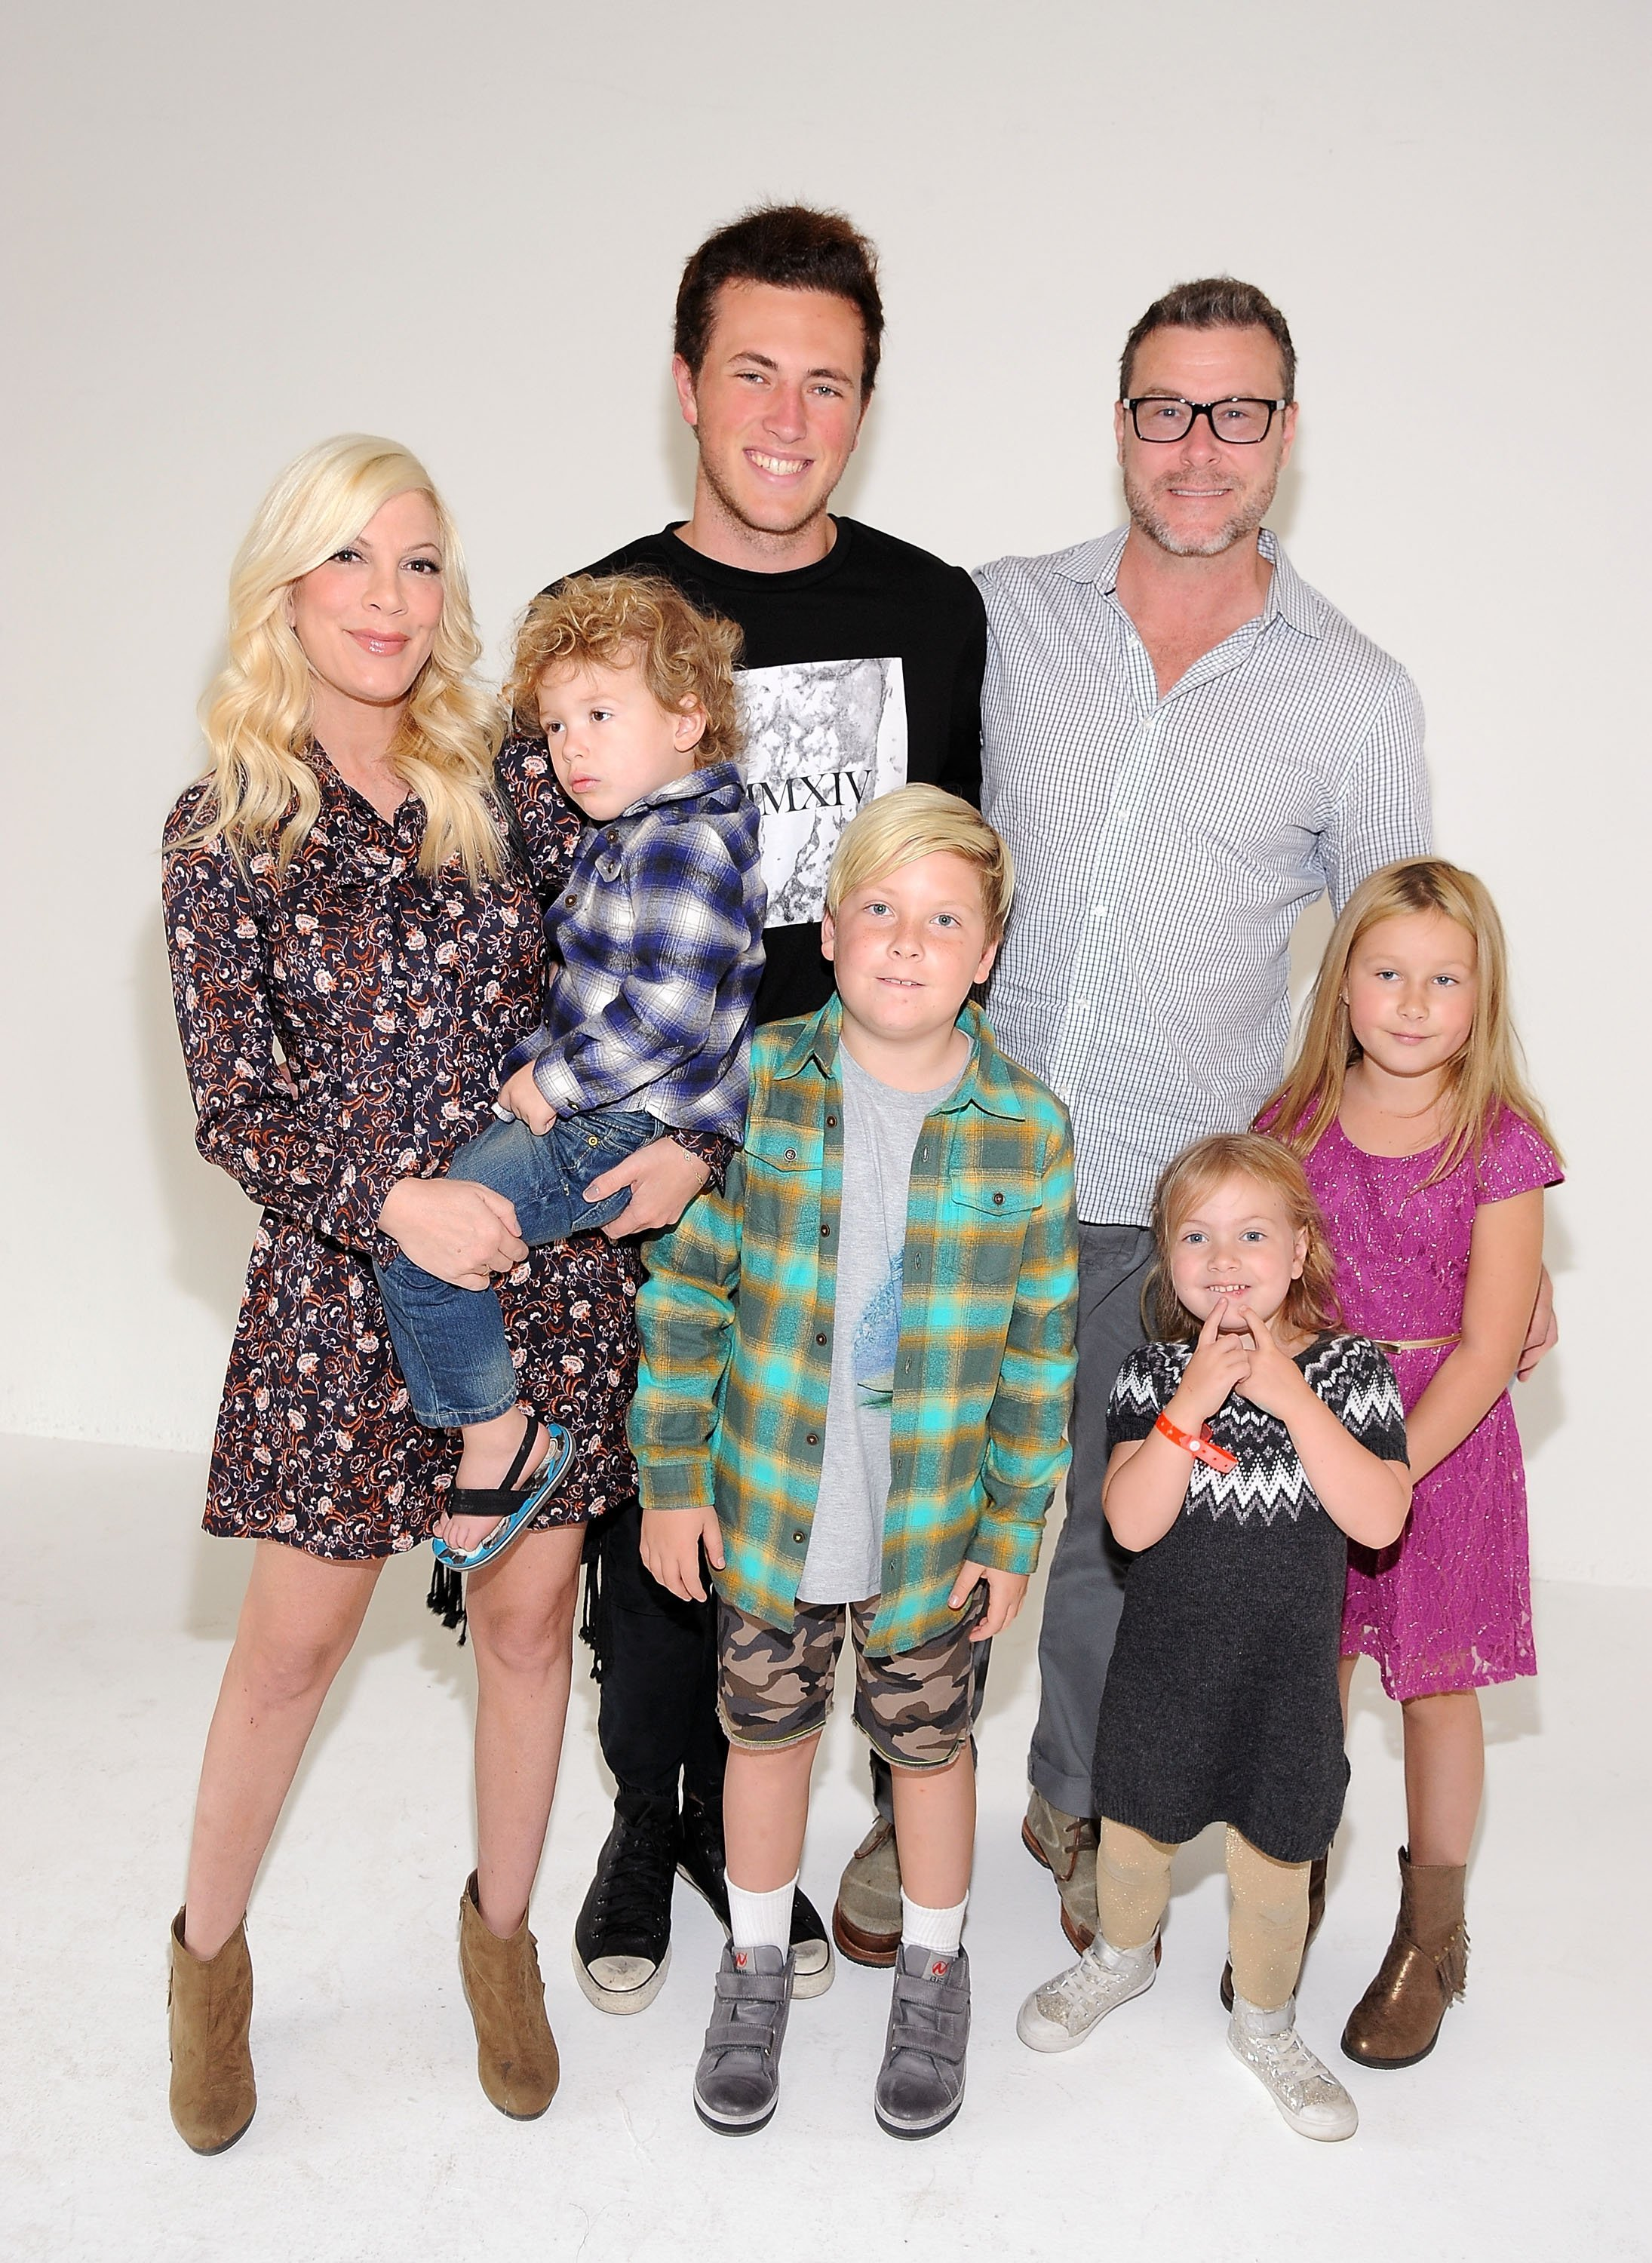 Tori Spelling and Dean McDermott with their kids Liam, Stella, Hattie, Beau, and Finn. | Source: Getty Images